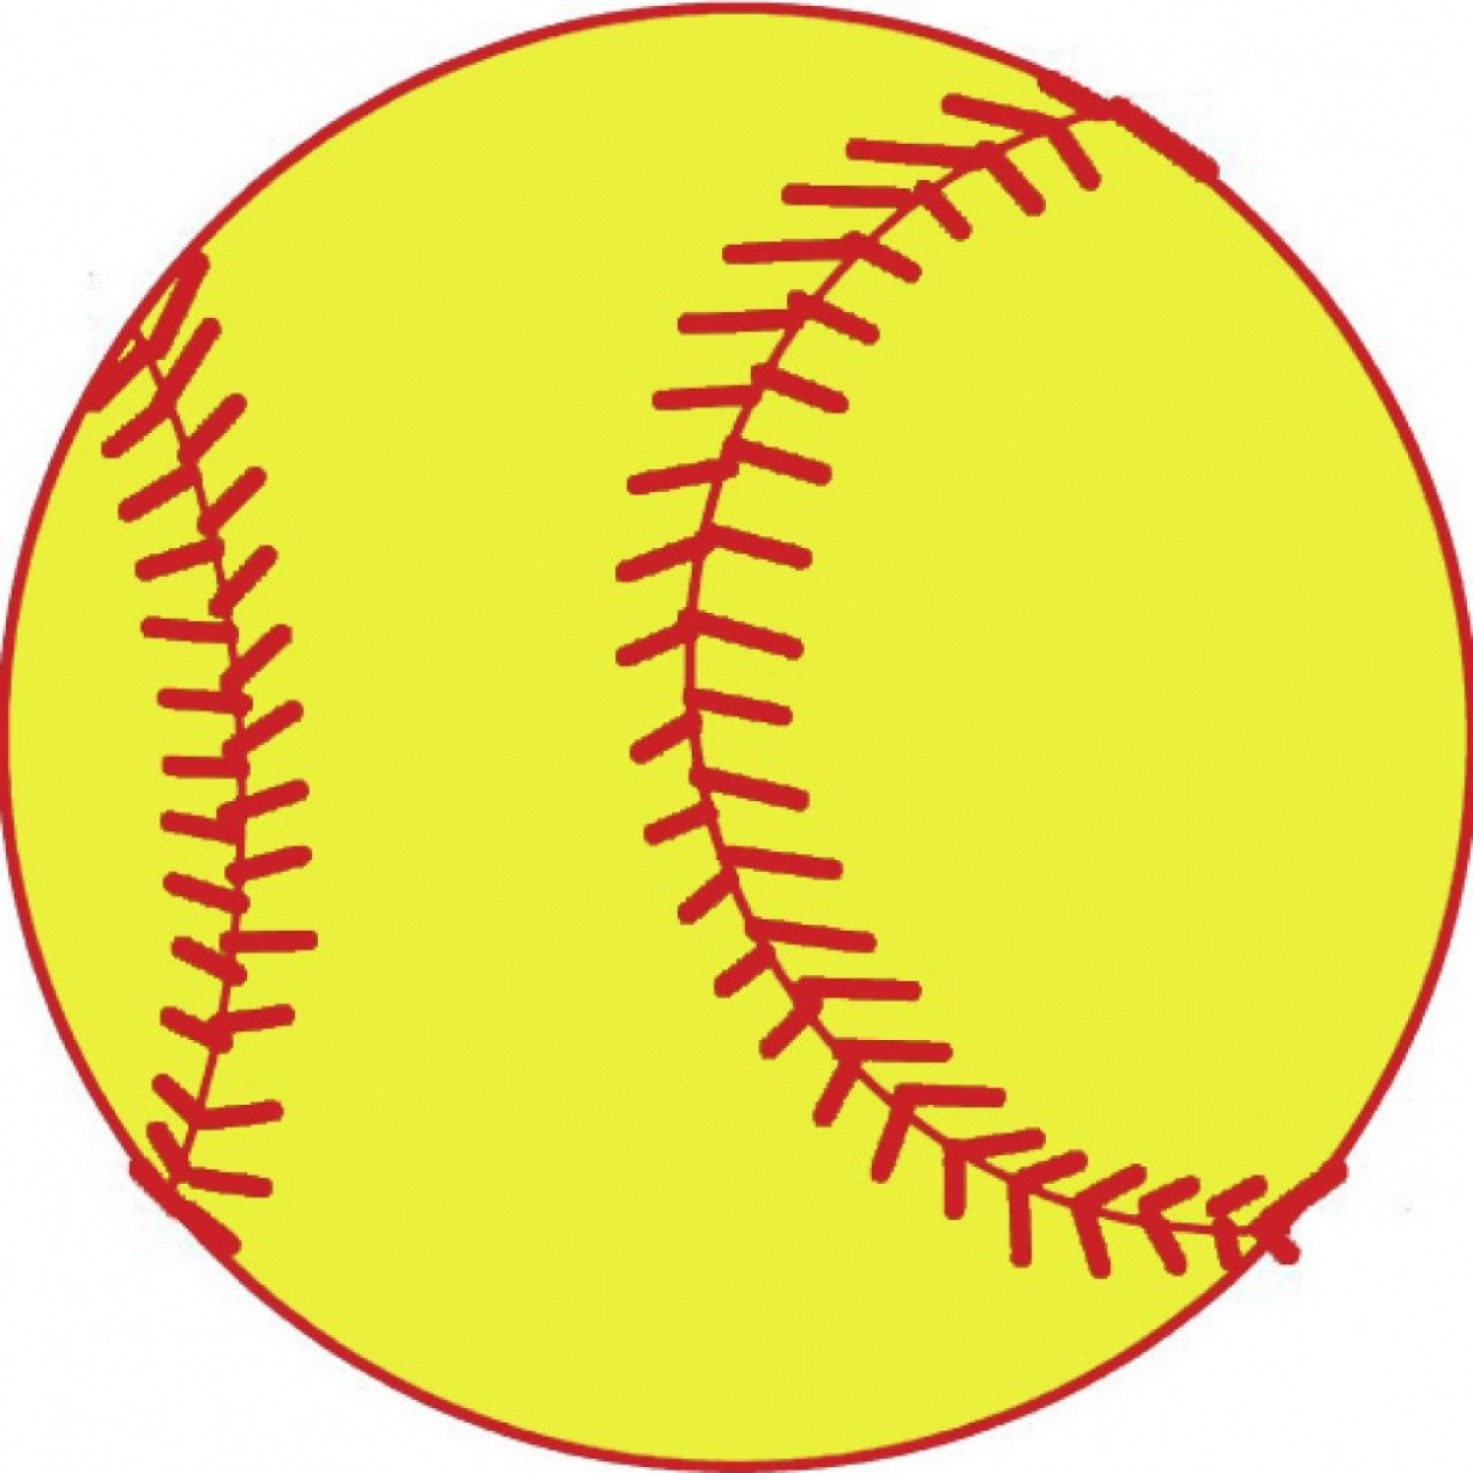 Clipart Softball Girl Holding Out A Ball With Bat Resting On.